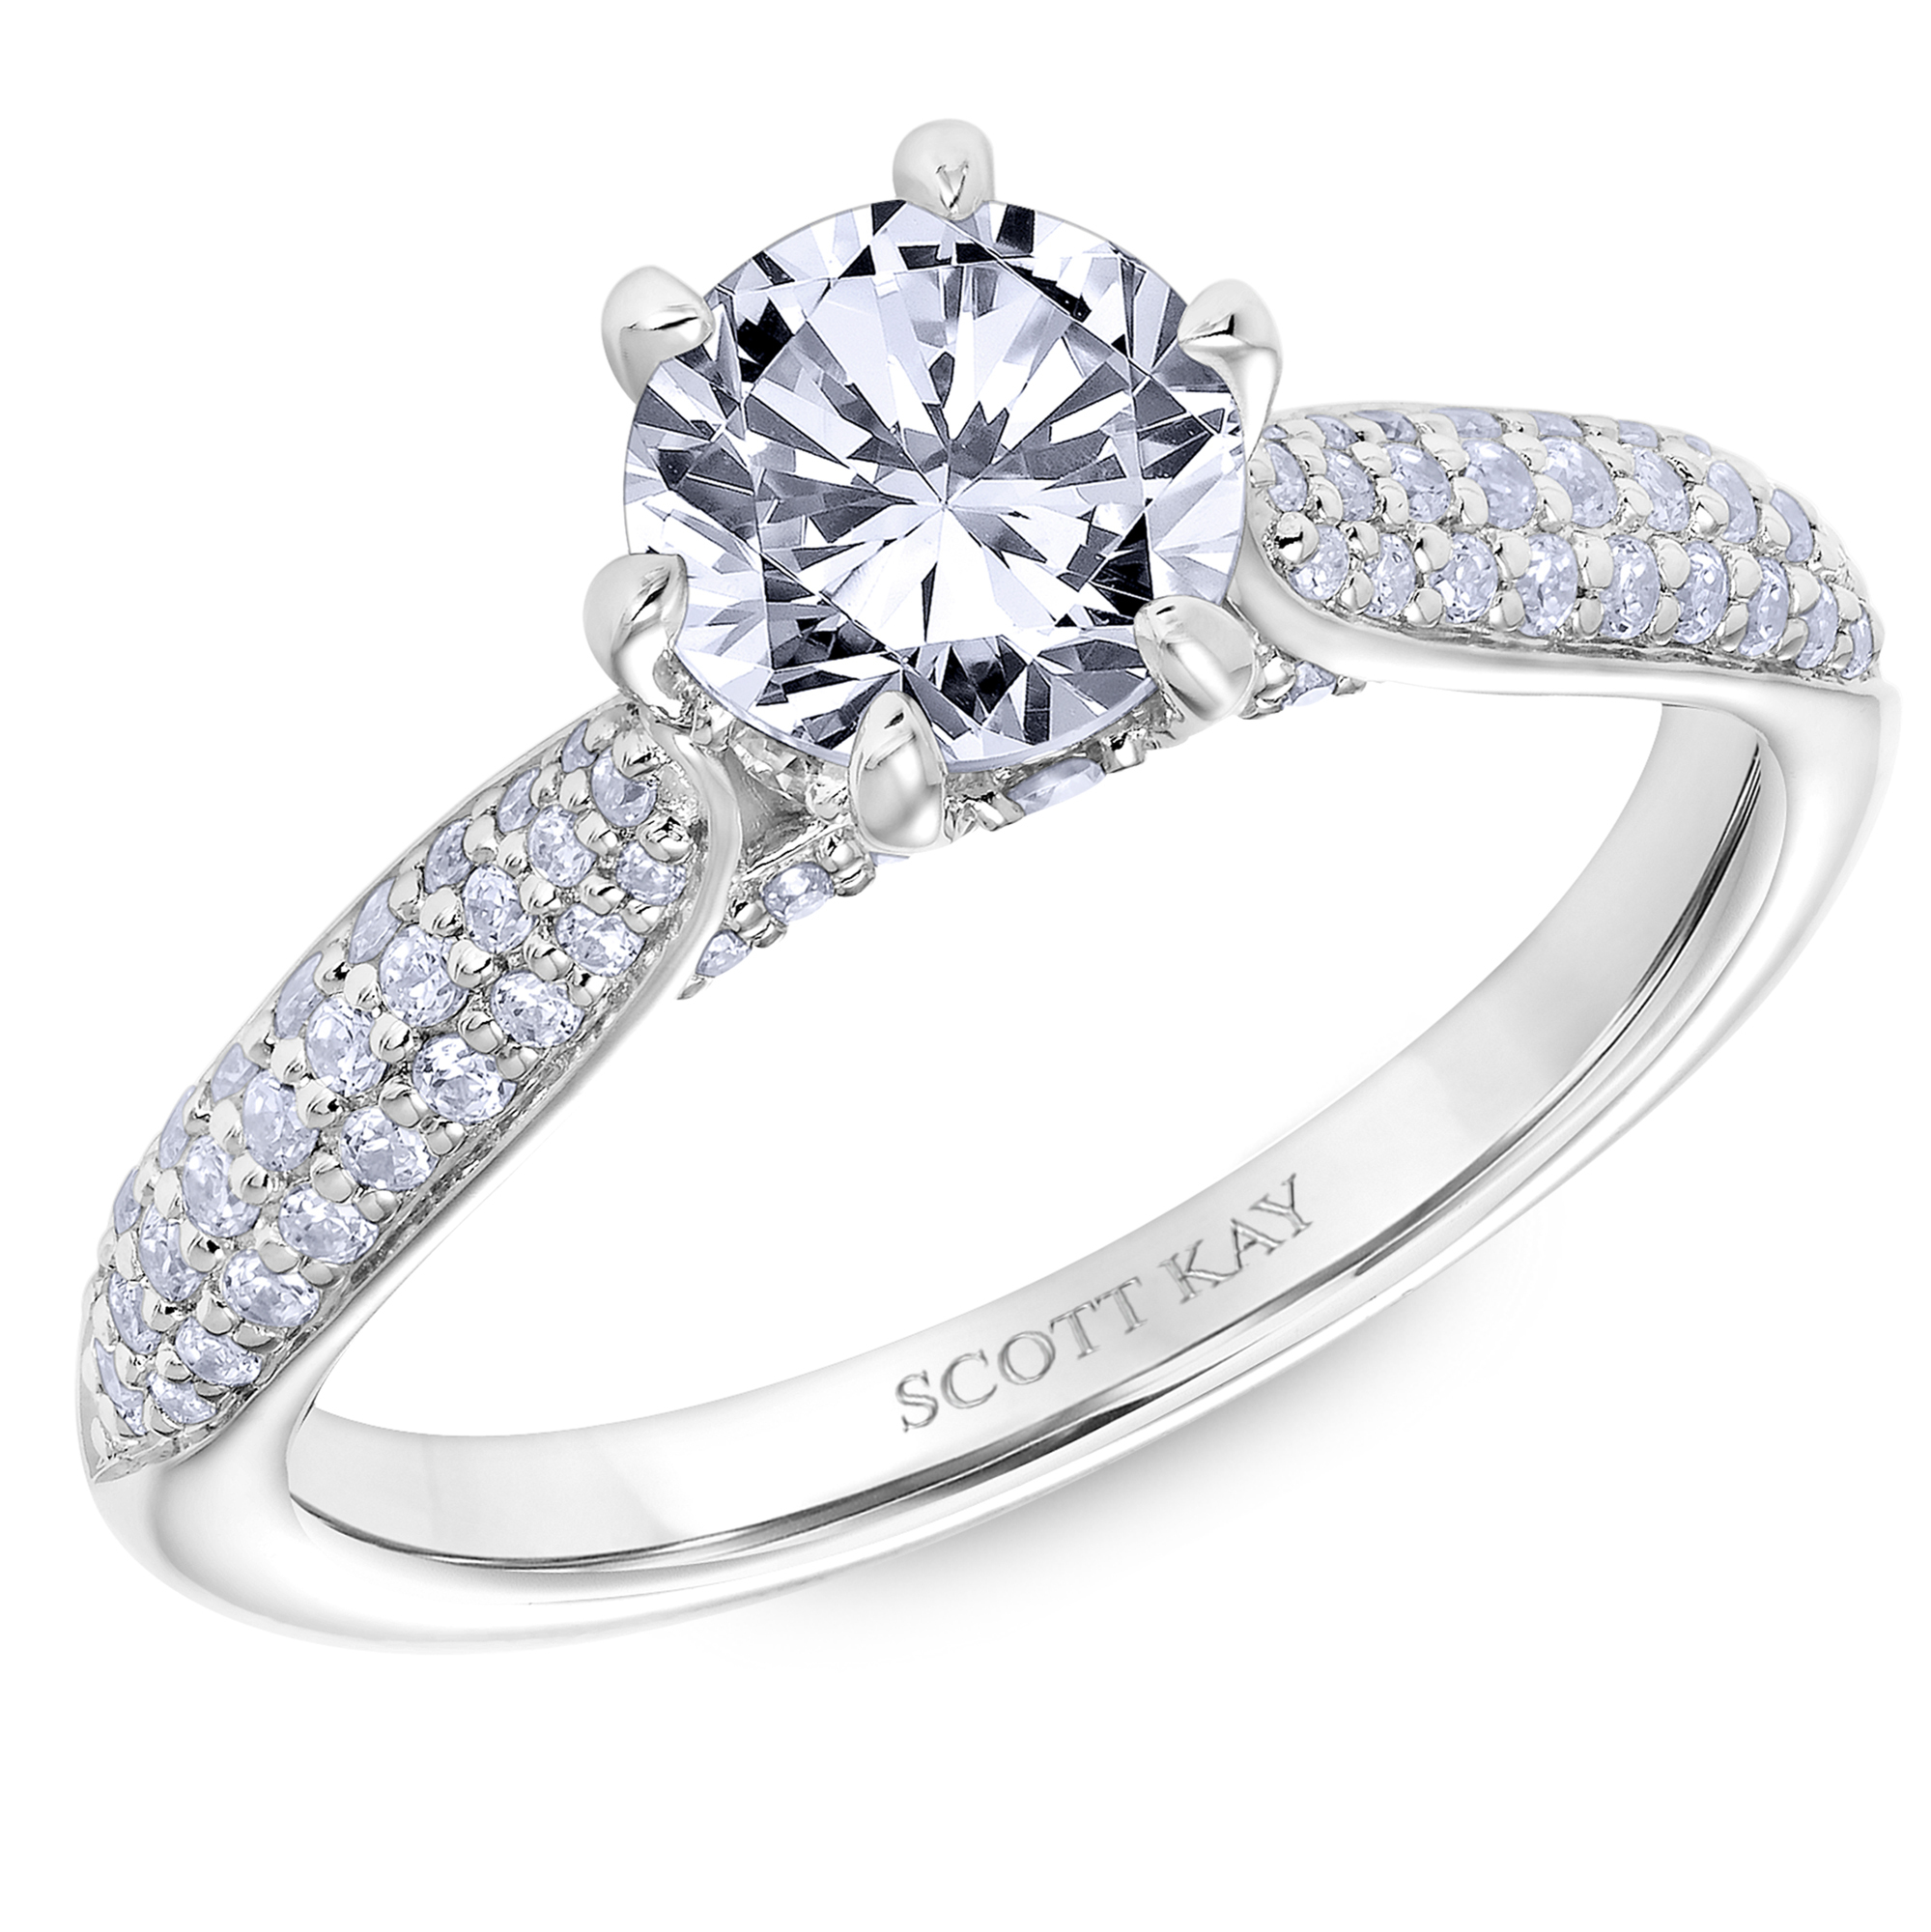 wedding engagement rings scott kay of best gold solitaire bands diamond ring platinum h new center